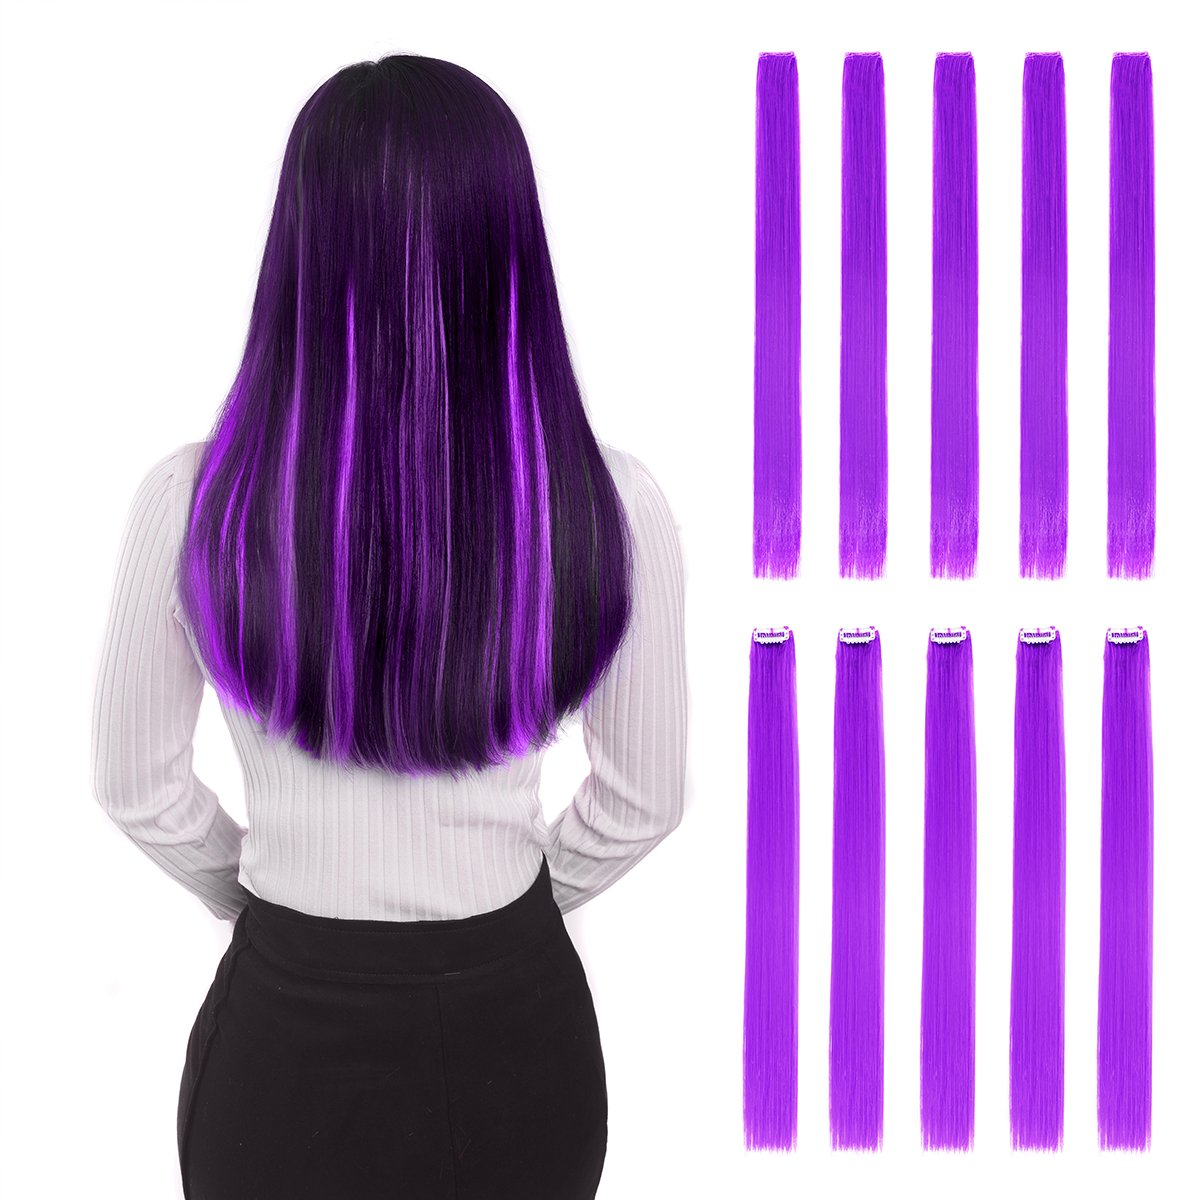 Colored Clip in Hair Extensions 22 10pcs Straight Fashion Hairpieces for Party Highlights Purple BHF